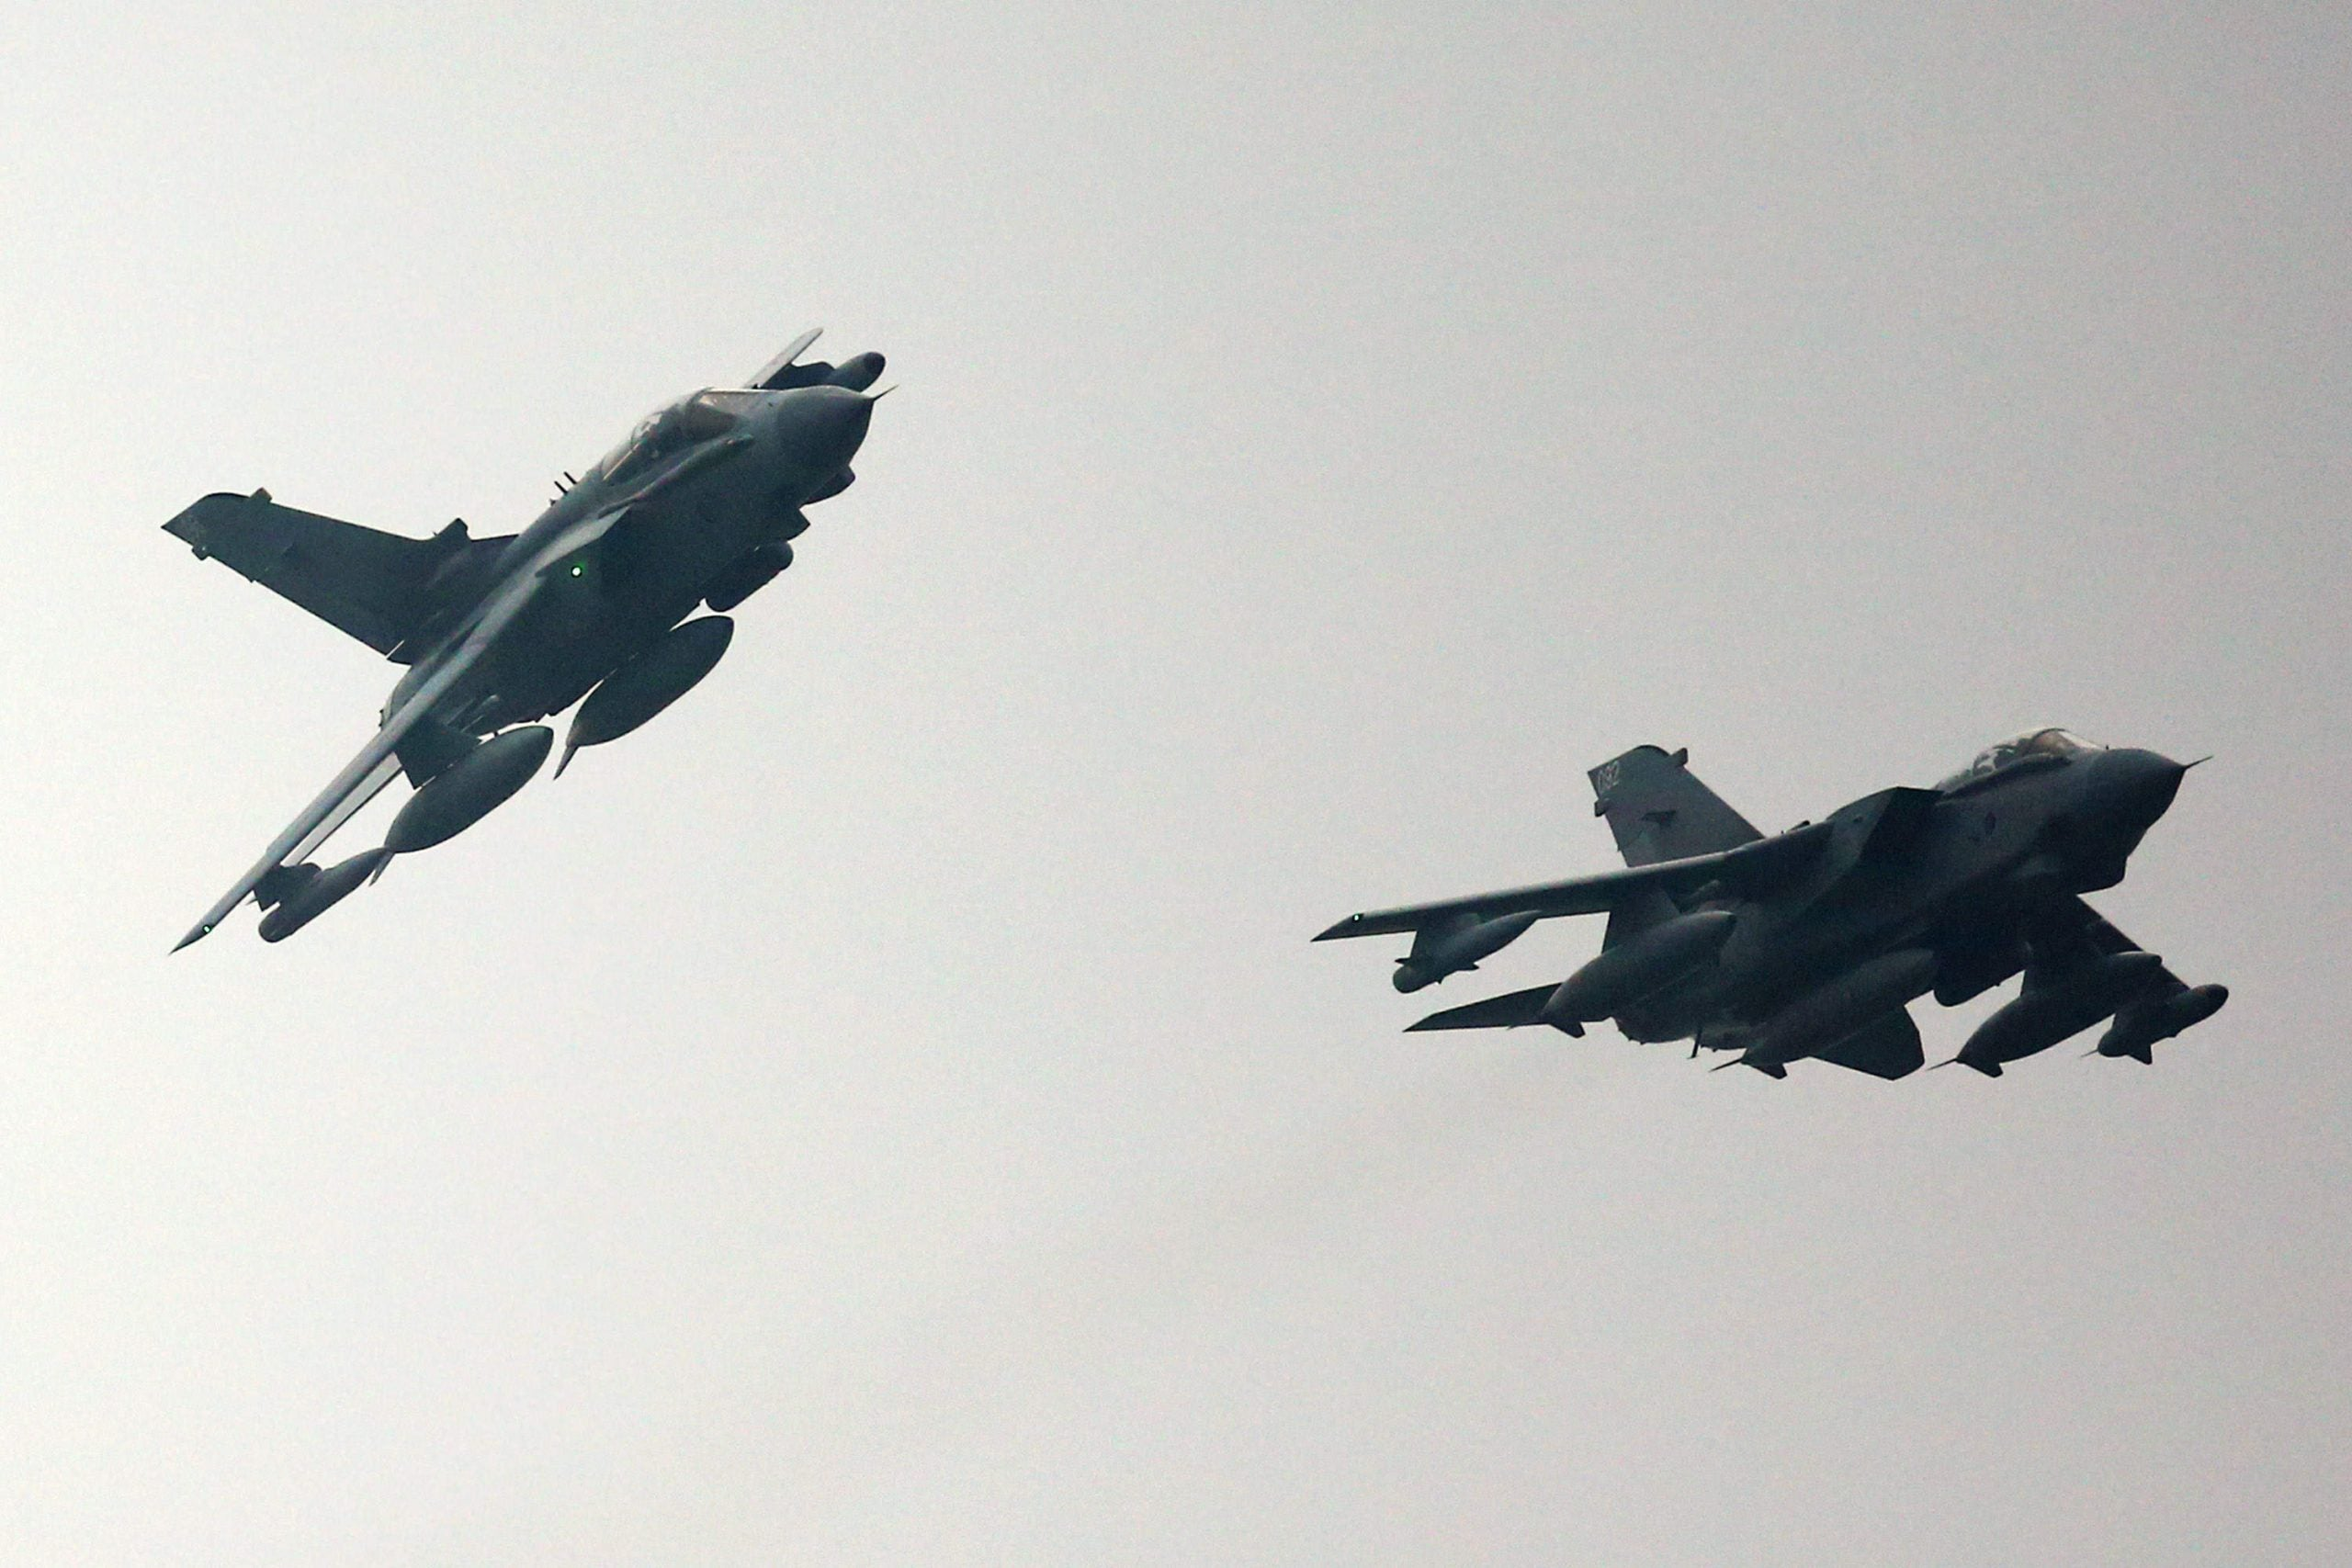 The UK cannot afford another Defence Review like the last one